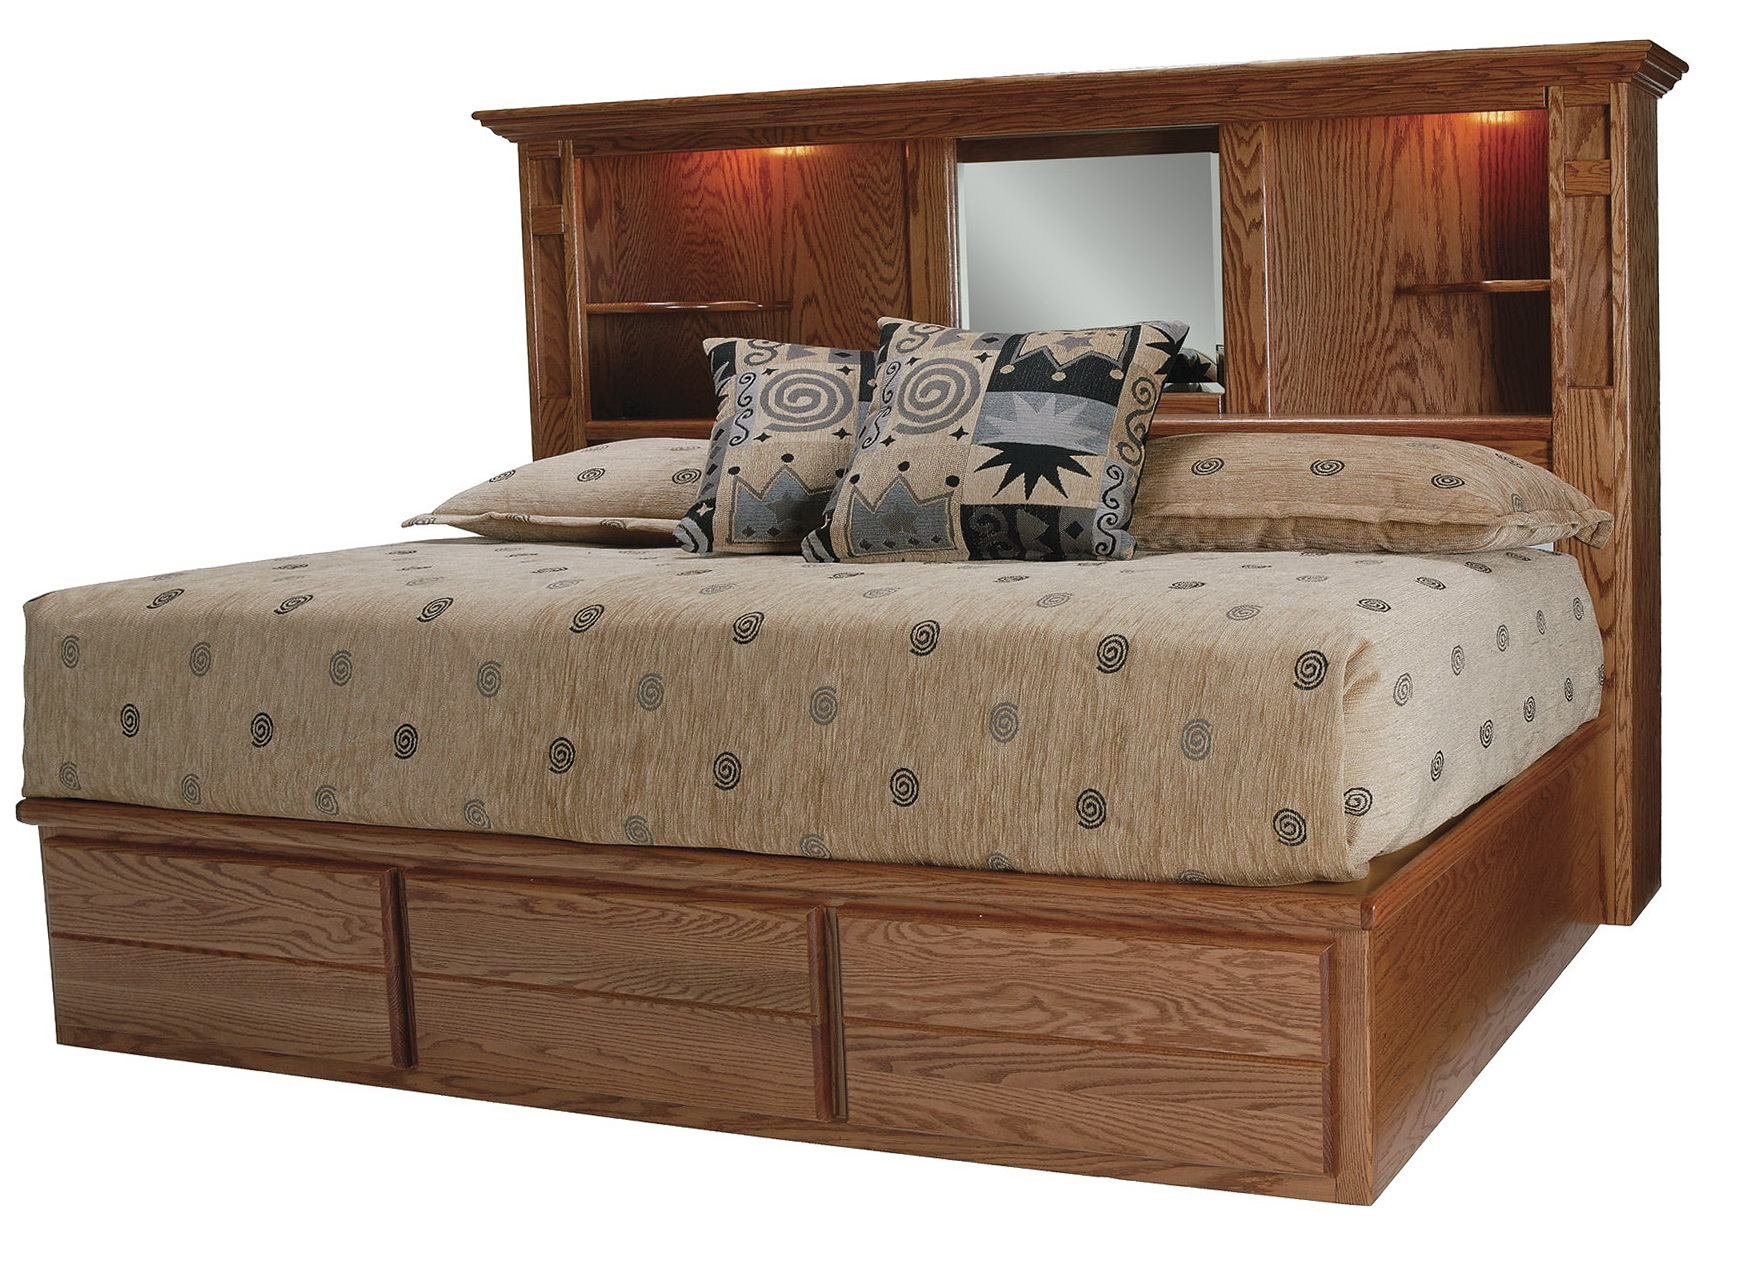 King Size Bookcase Headboard With Mirror Home Design Ideas